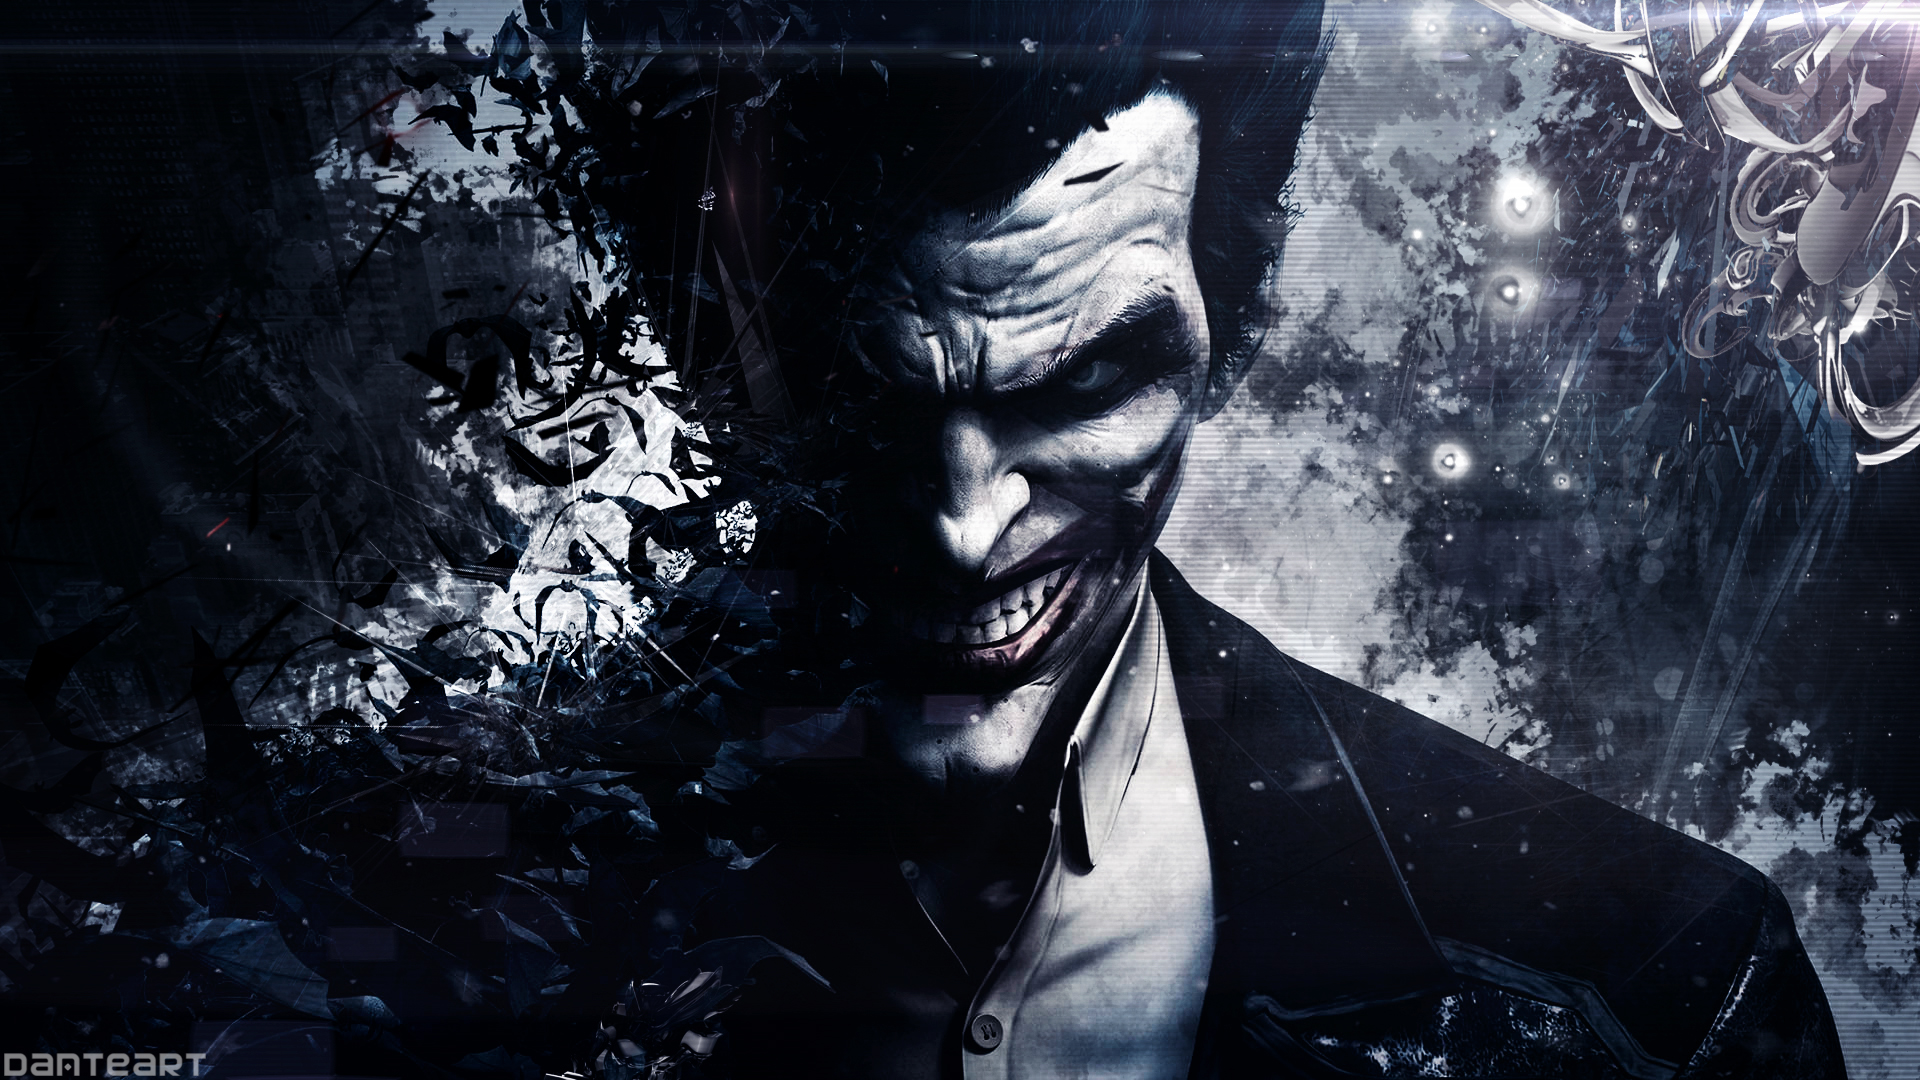 Batman Arkham Origins Joker Wallpaper by DanteArtWallpapers on 1920x1080